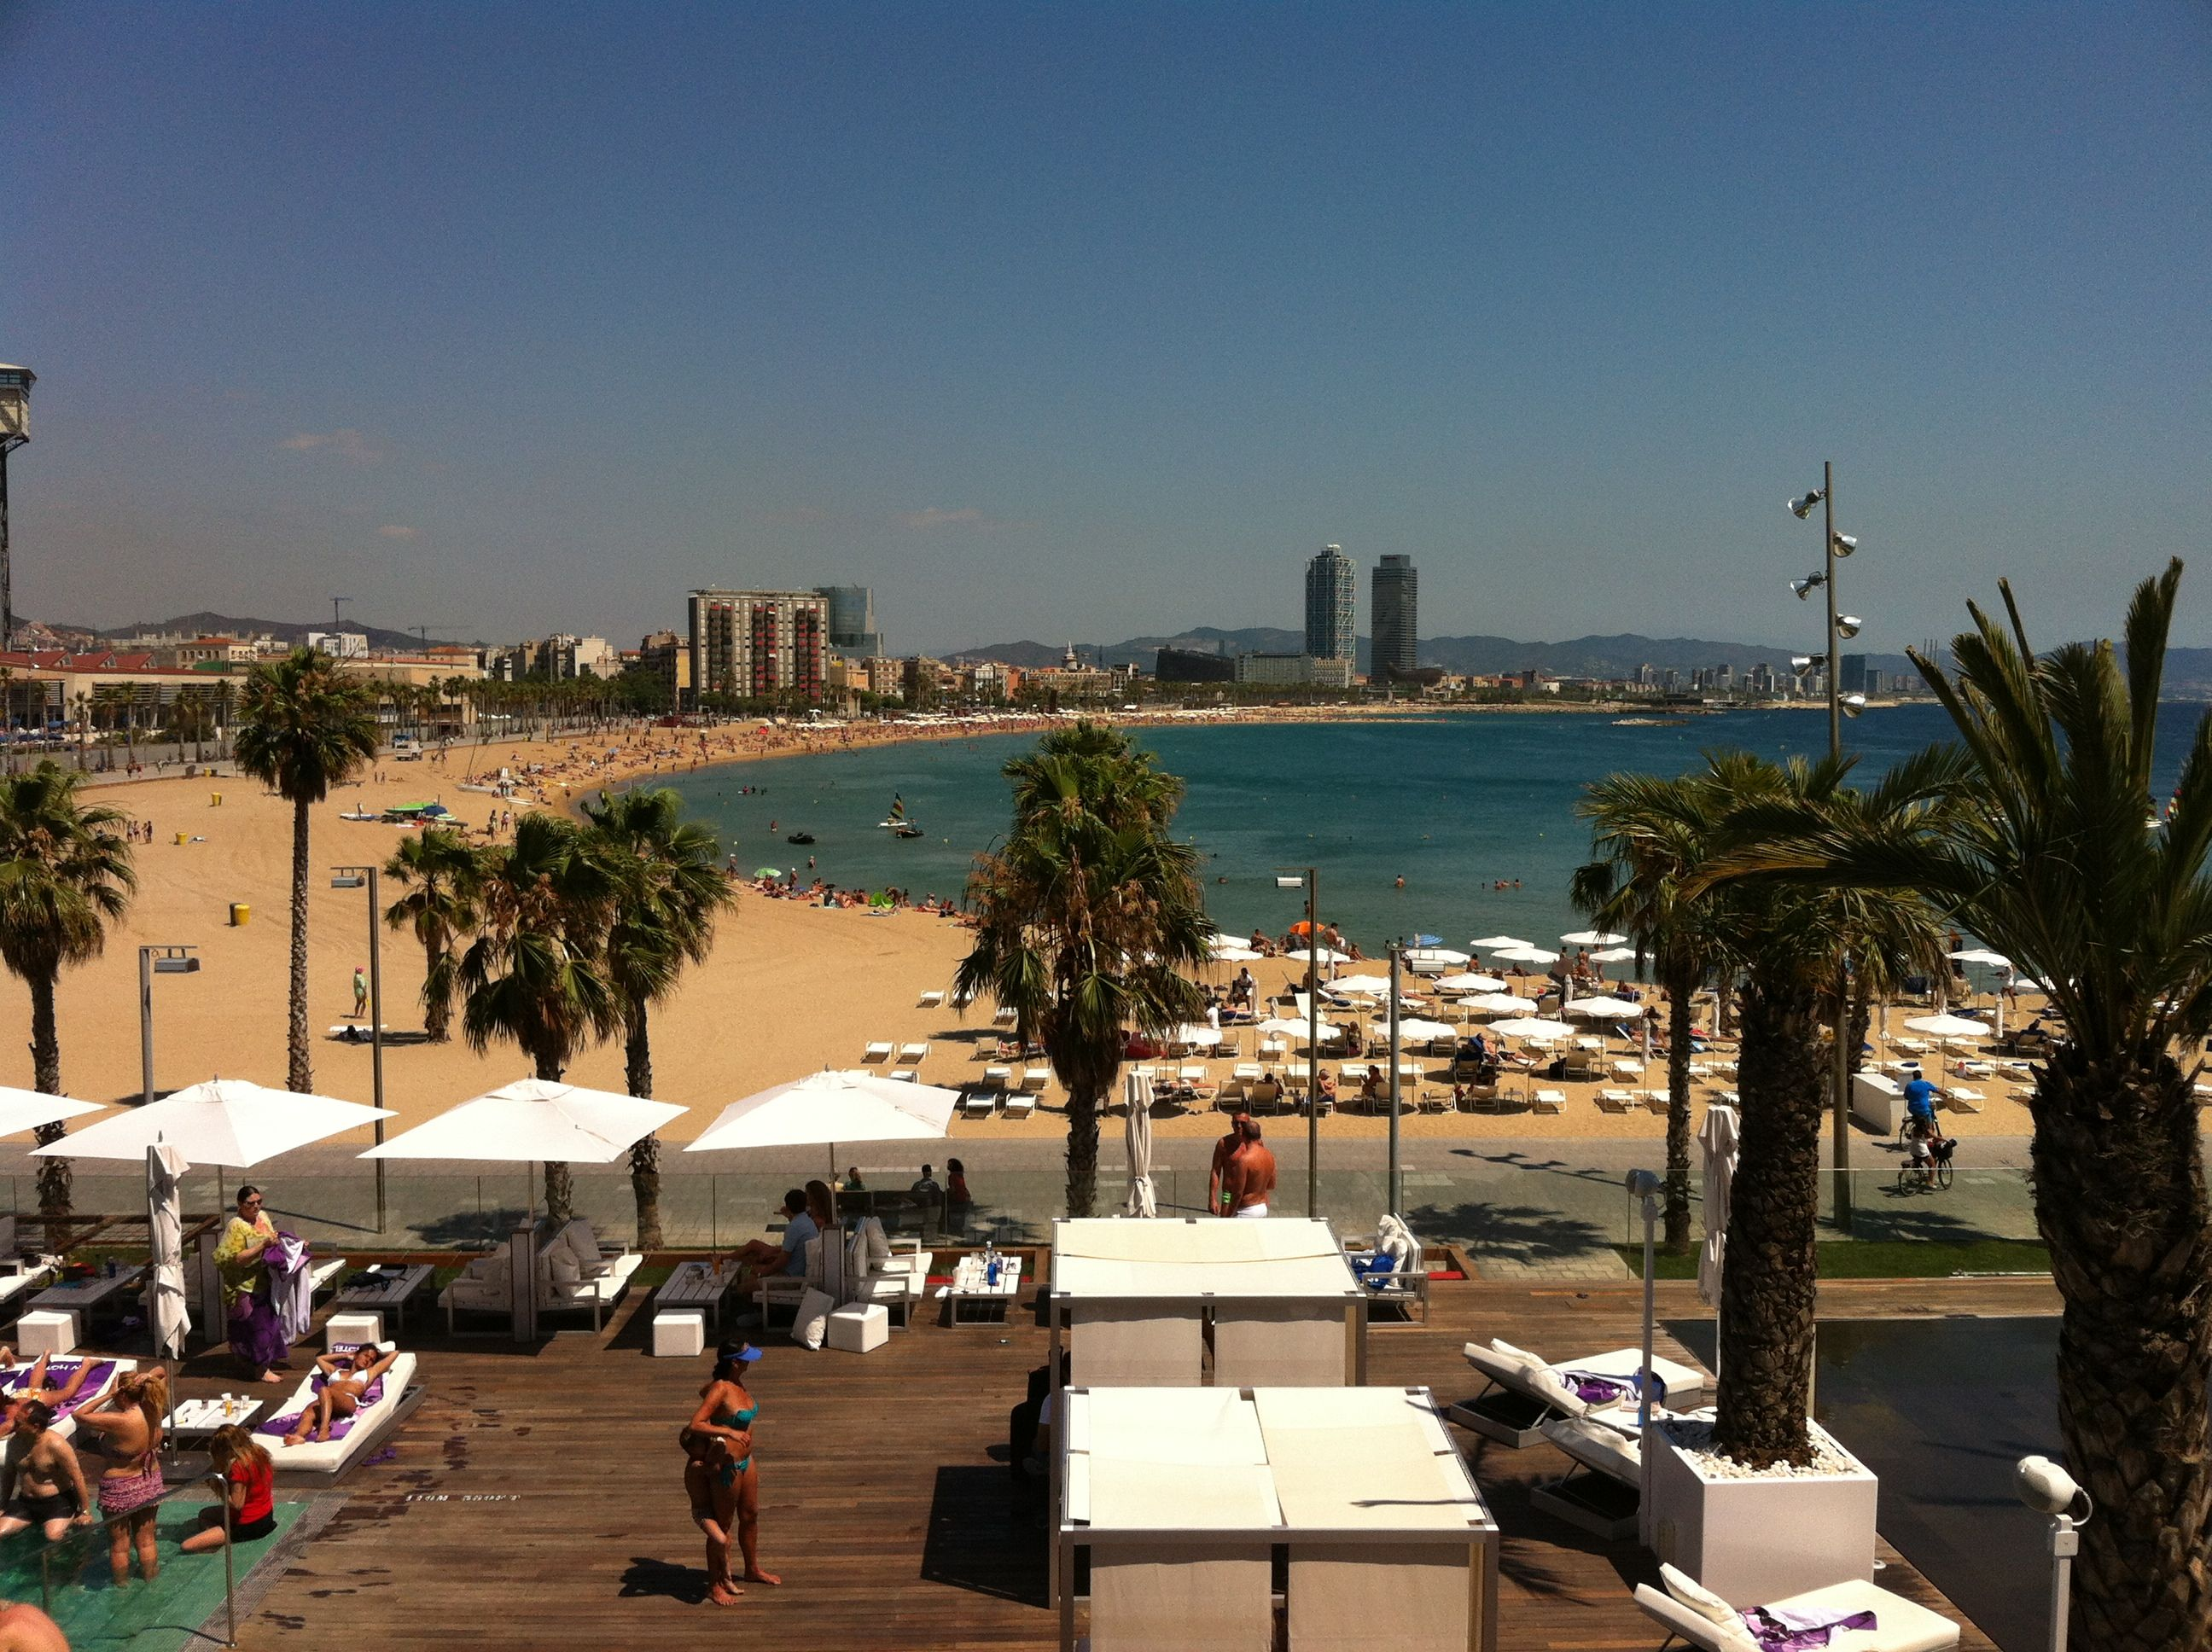 Barcelona, the city of choice for the Europen iGaming Congress and Expo 2012